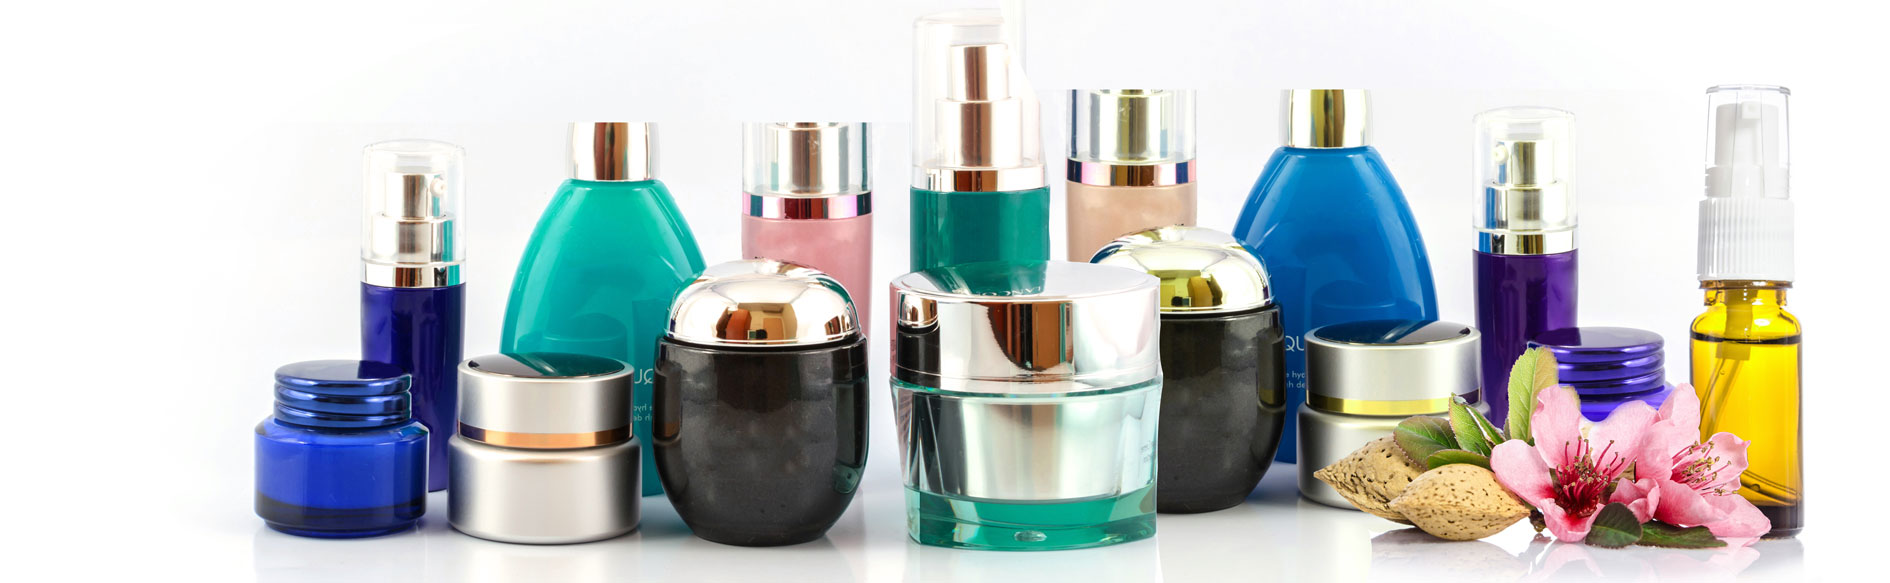 Anyone else have too many products to count. Well much like fashion, I believe its better to have a few power players in skincare, than a completely covered vanity of vague products.